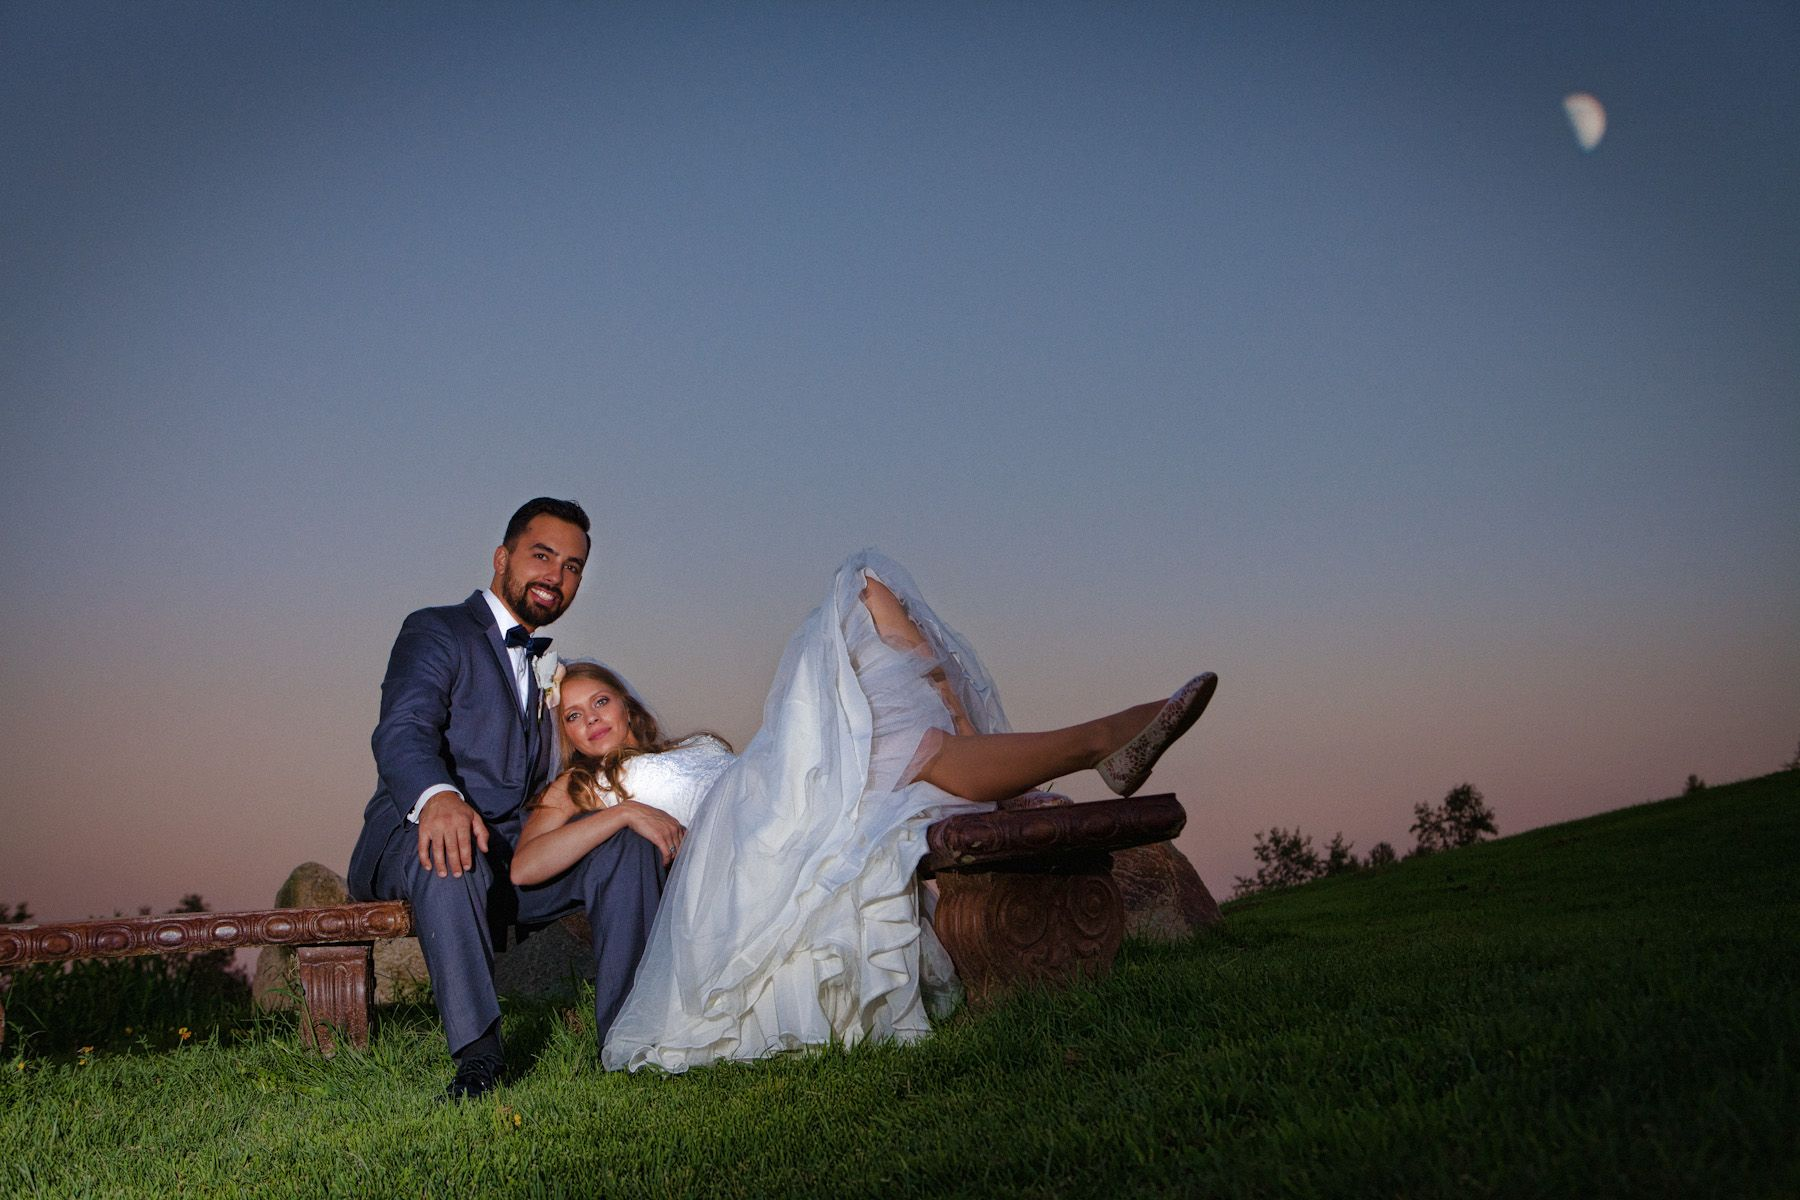 Wedding Photography, Wedgewood Fallbrook, Fallbrook CA